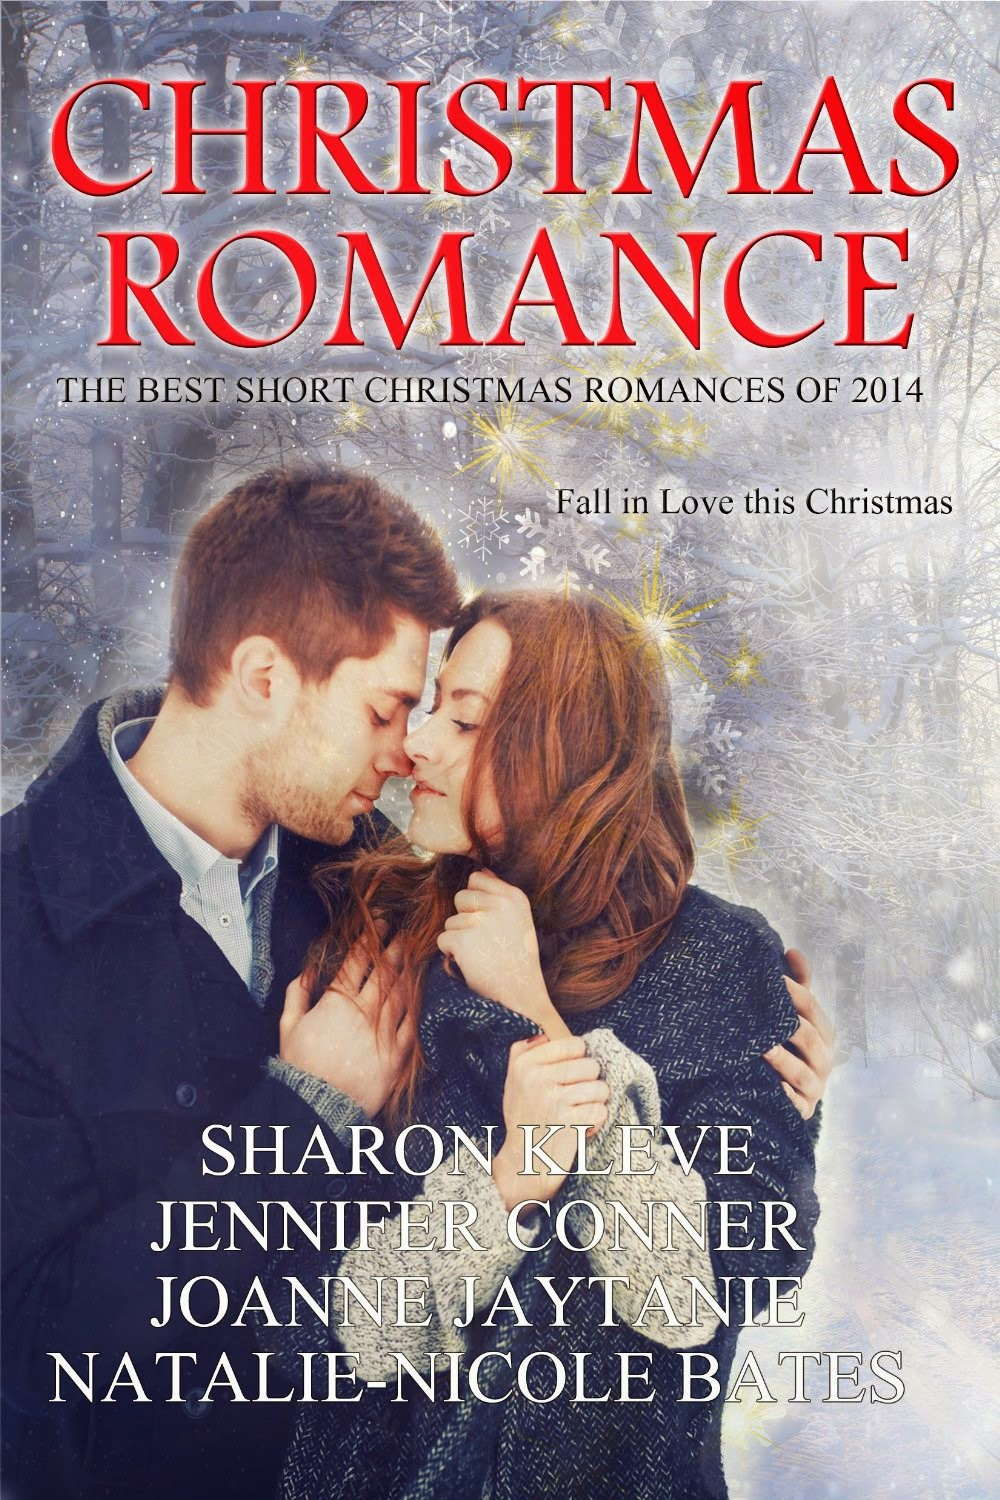 http://www.amazon.com/Christmas-Romance-Best-Romances-2014-ebook/dp/B00PULHNG8/ref=asap_bc?ie=UTF8